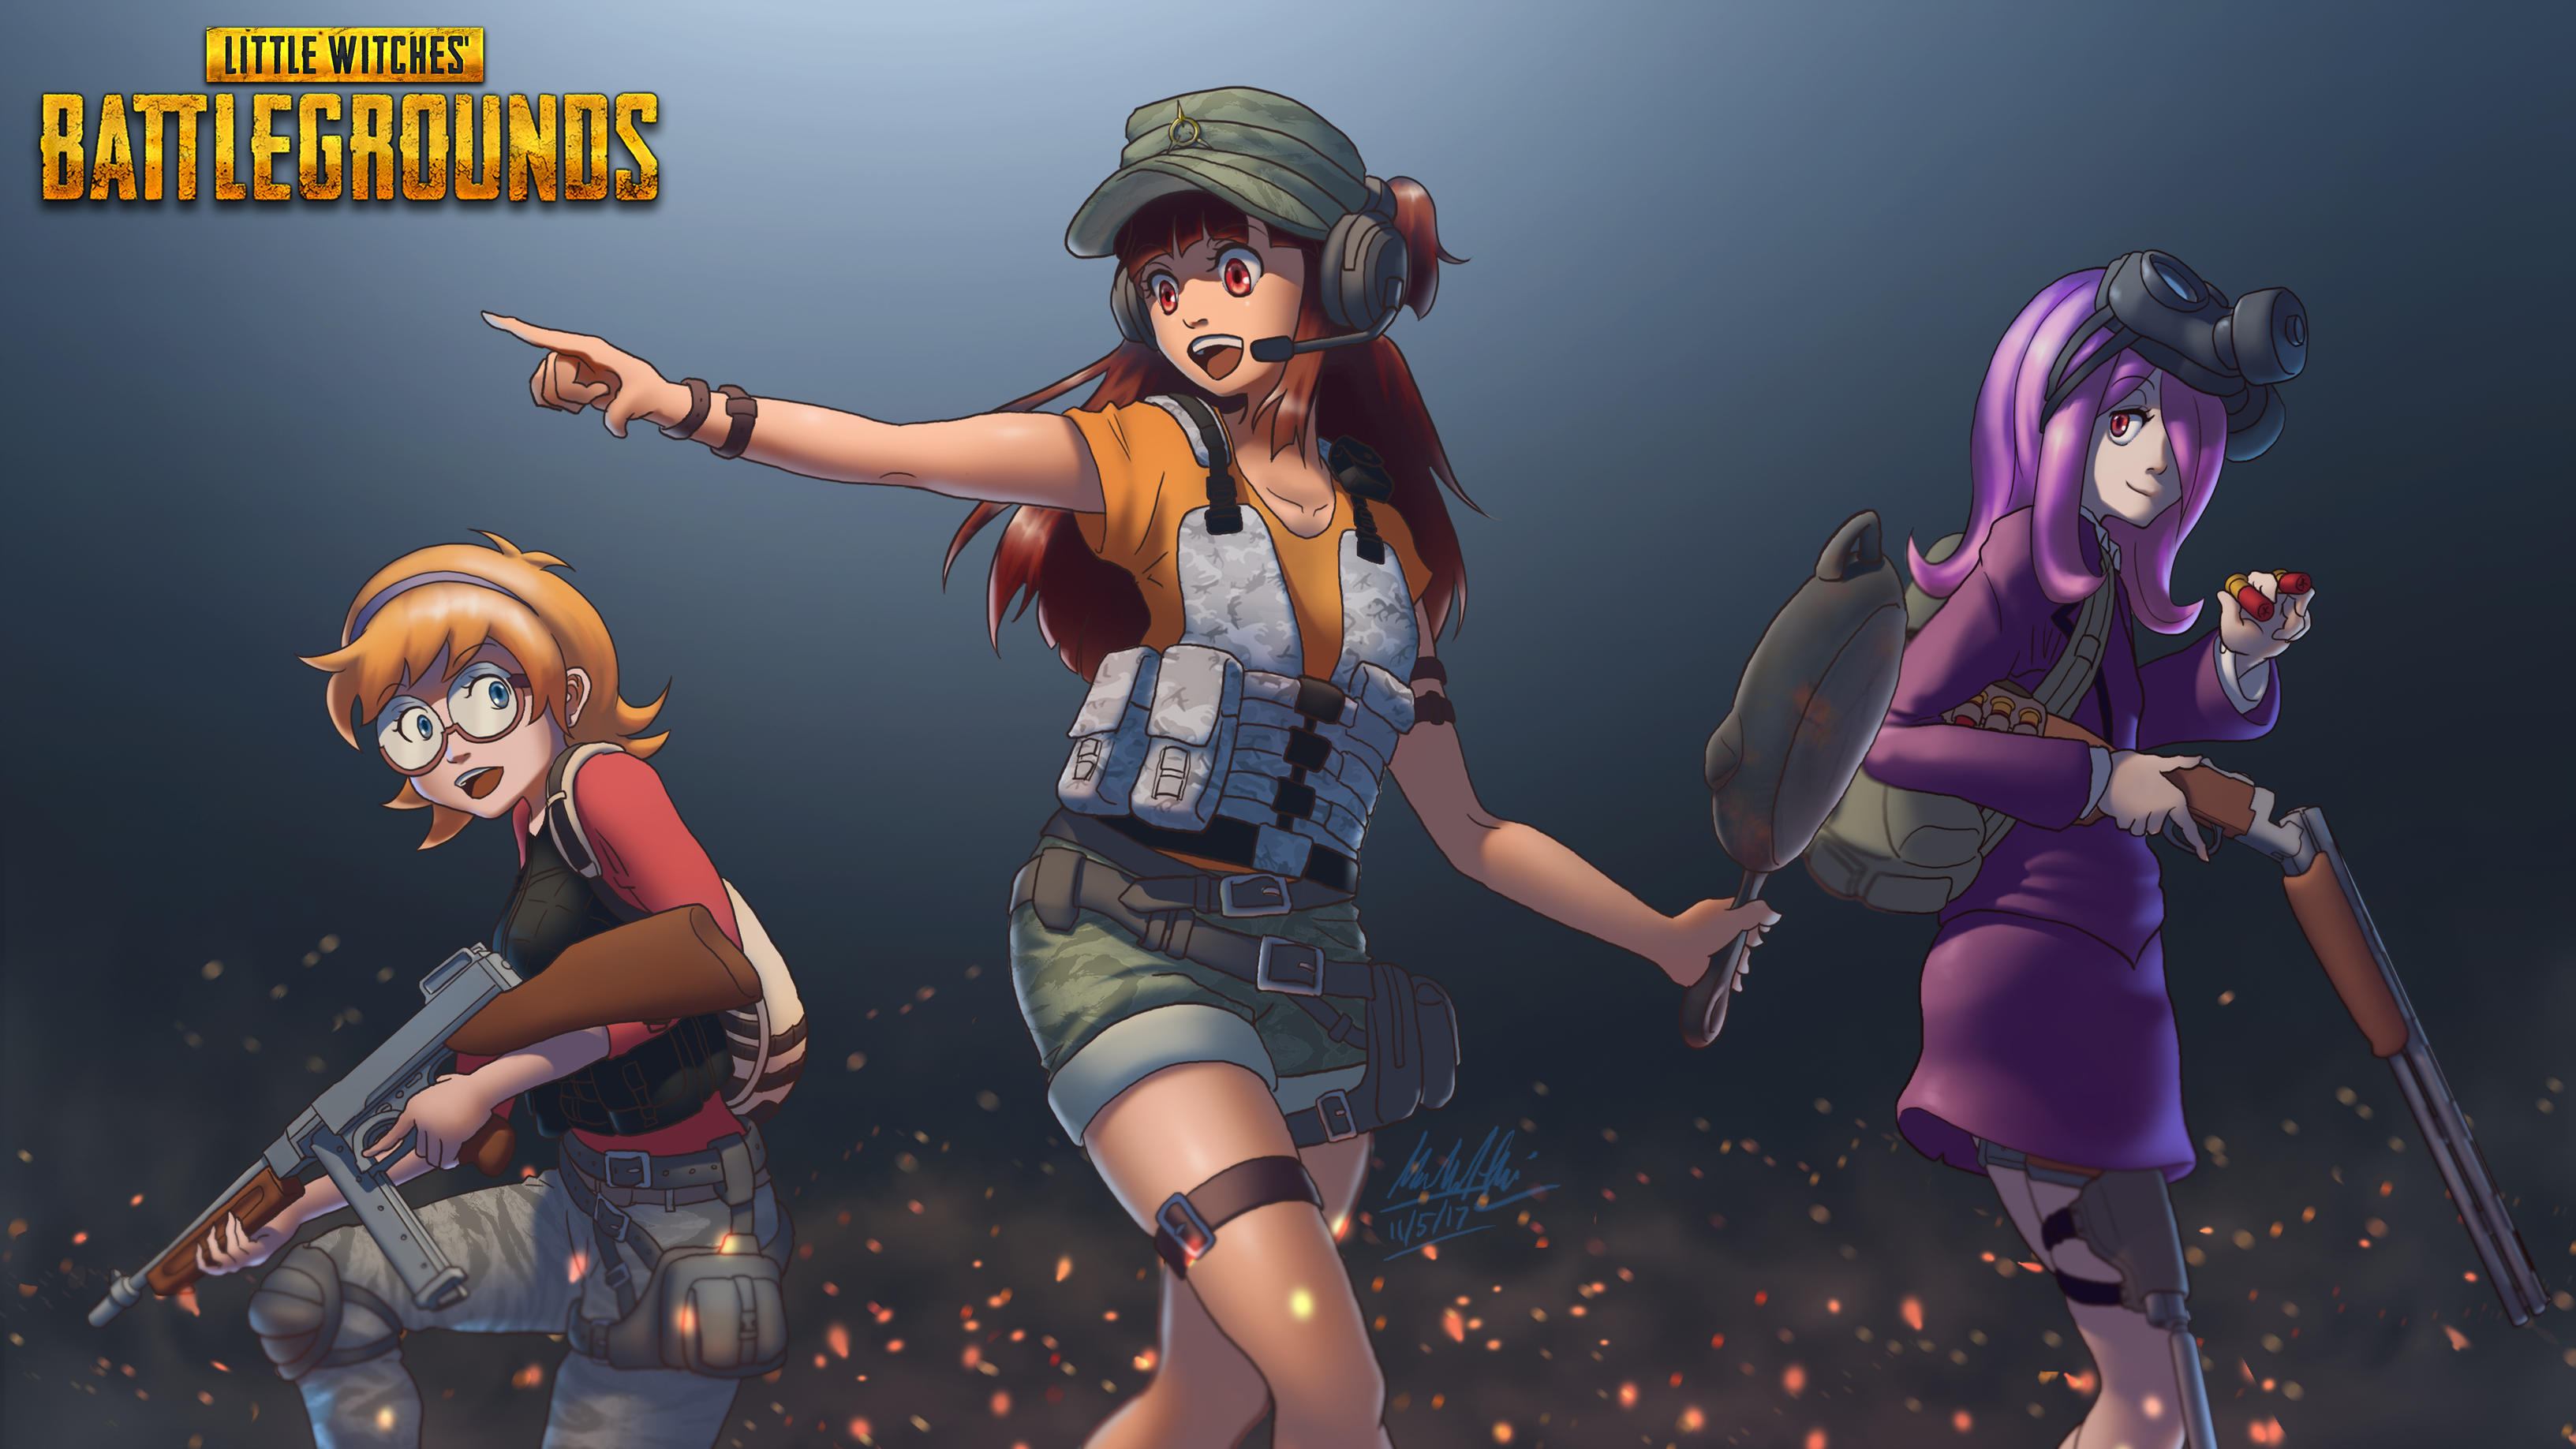 Pubg Game Girl Fanart Hd Games 4k Wallpapers Images: Pubg Anime Crossover Art, HD Games, 4k Wallpapers, Images